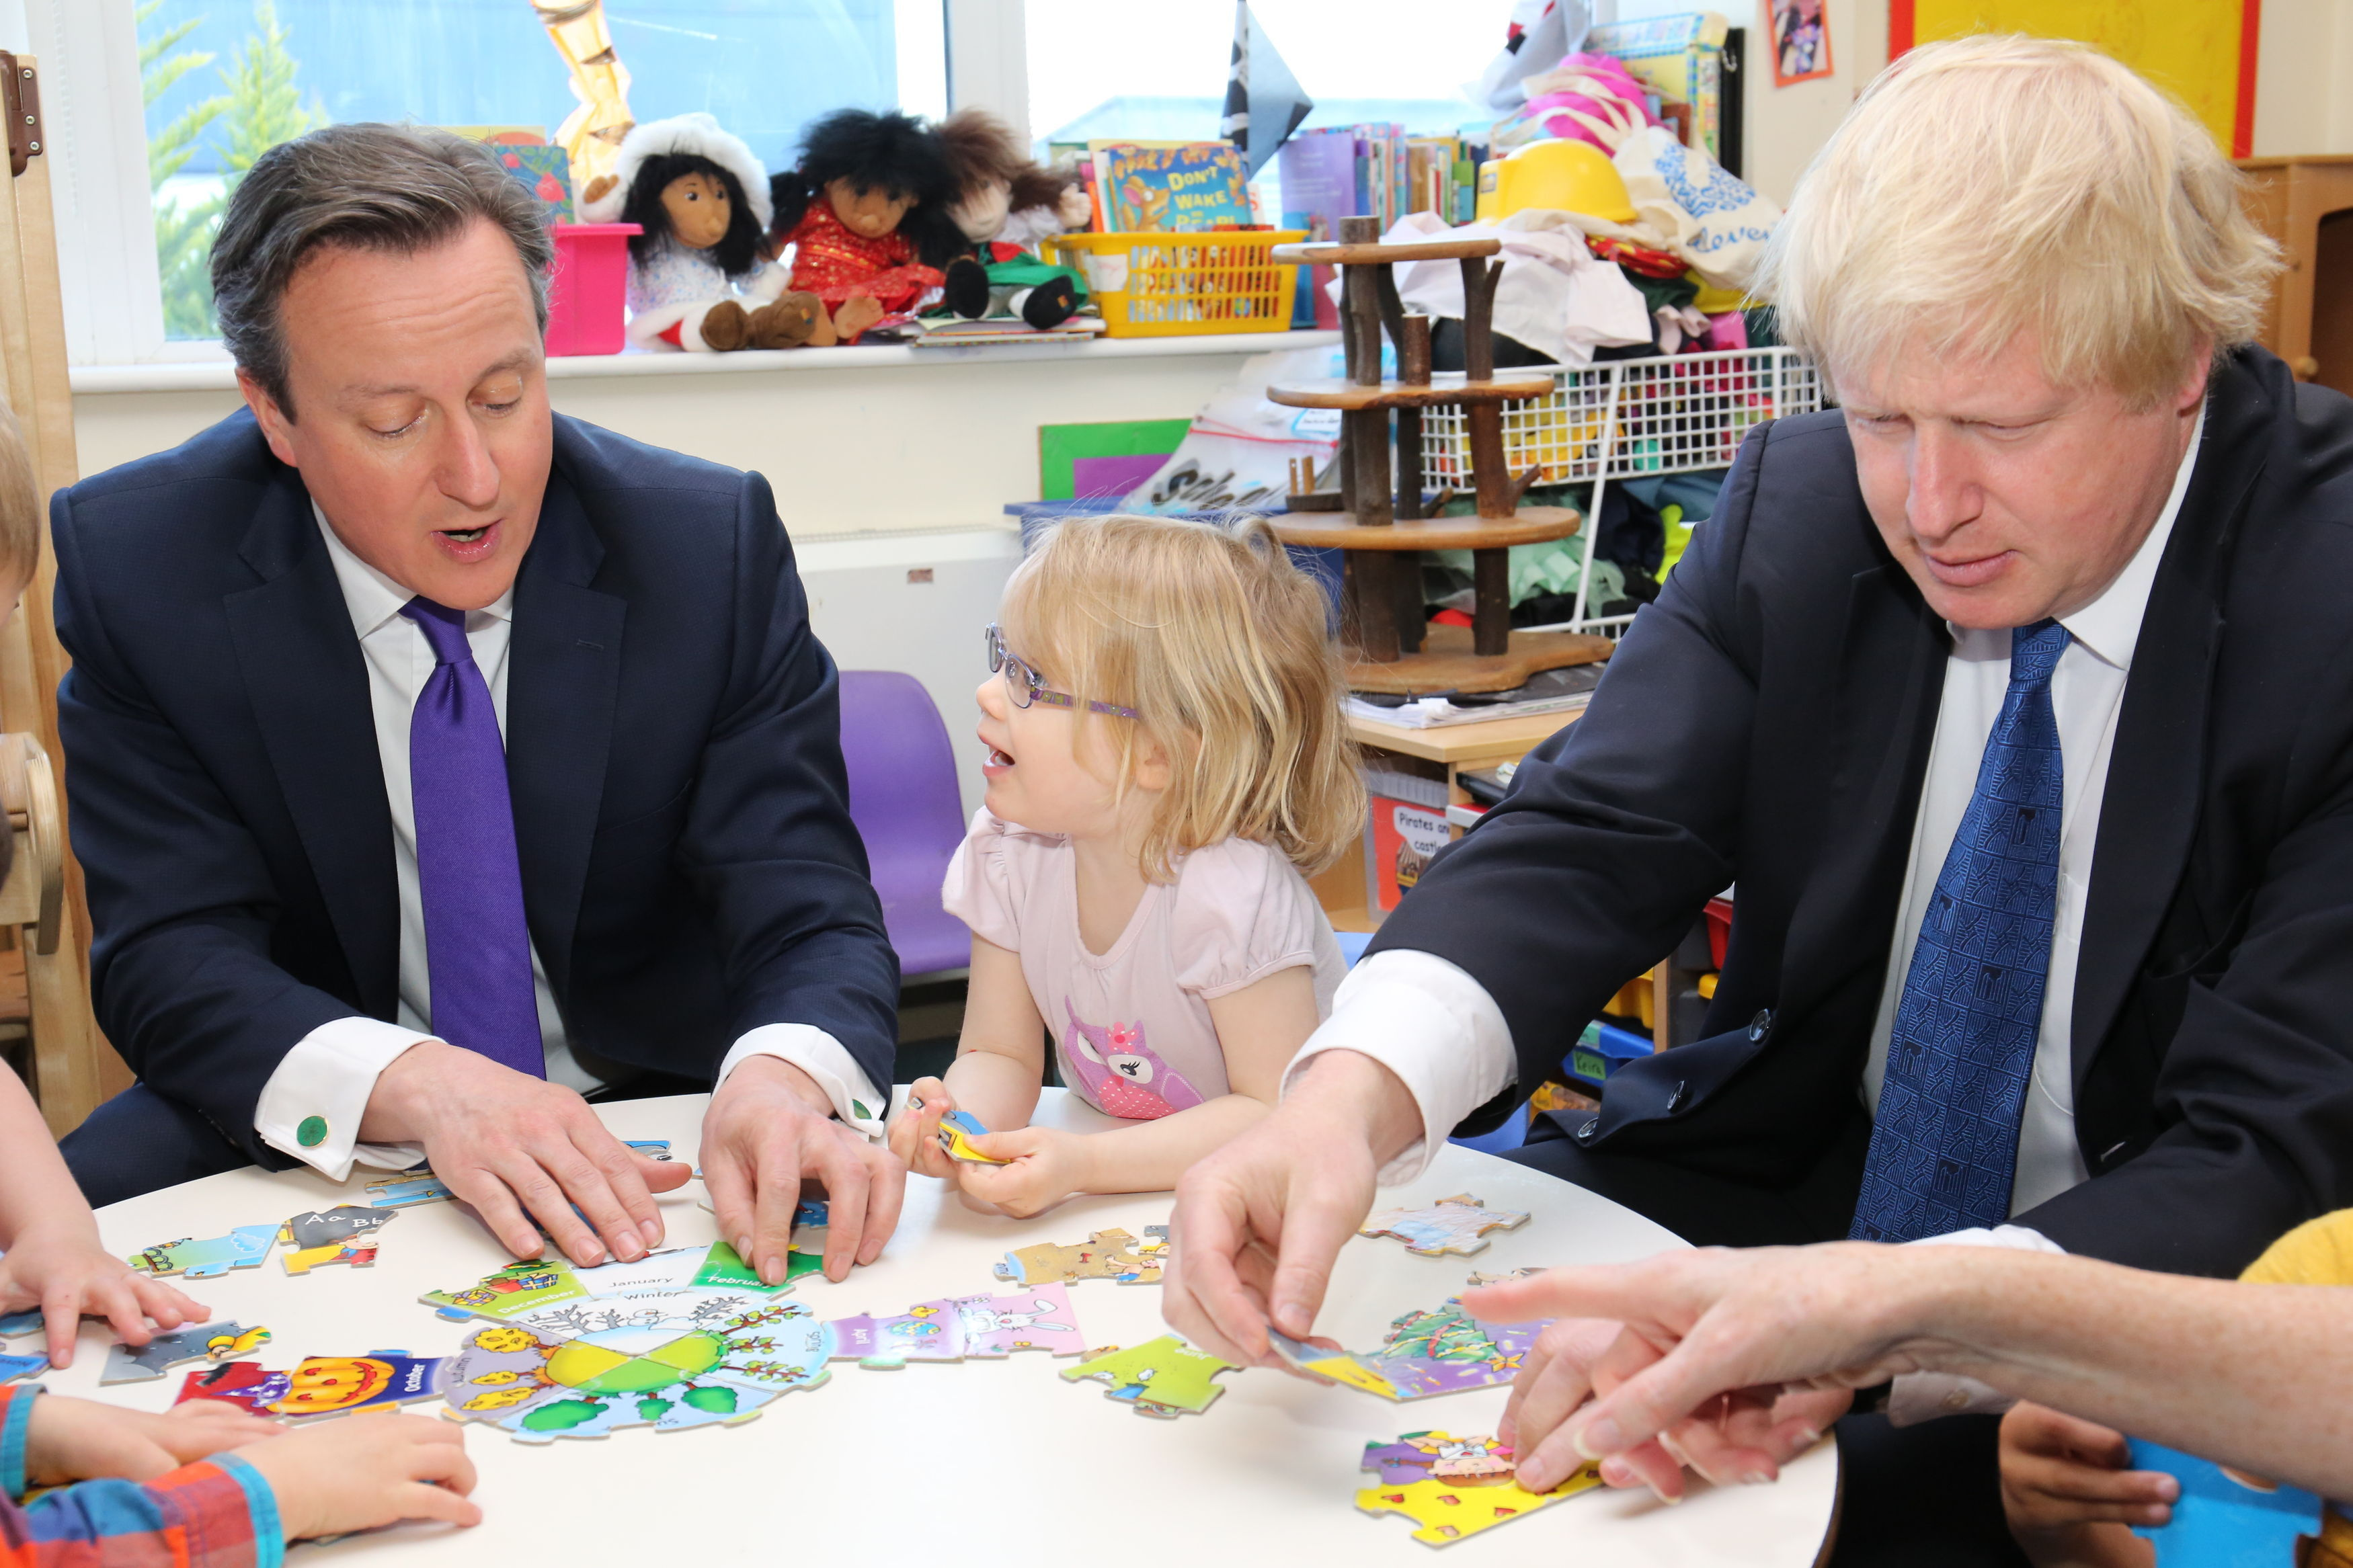 Prime Minister David Cameron (left) and Mayor of London Boris Johnson with 3 year old Staphanie during a General Election campaign visit to Advantage Children's Day Nursery in Surbiton, Surrey.